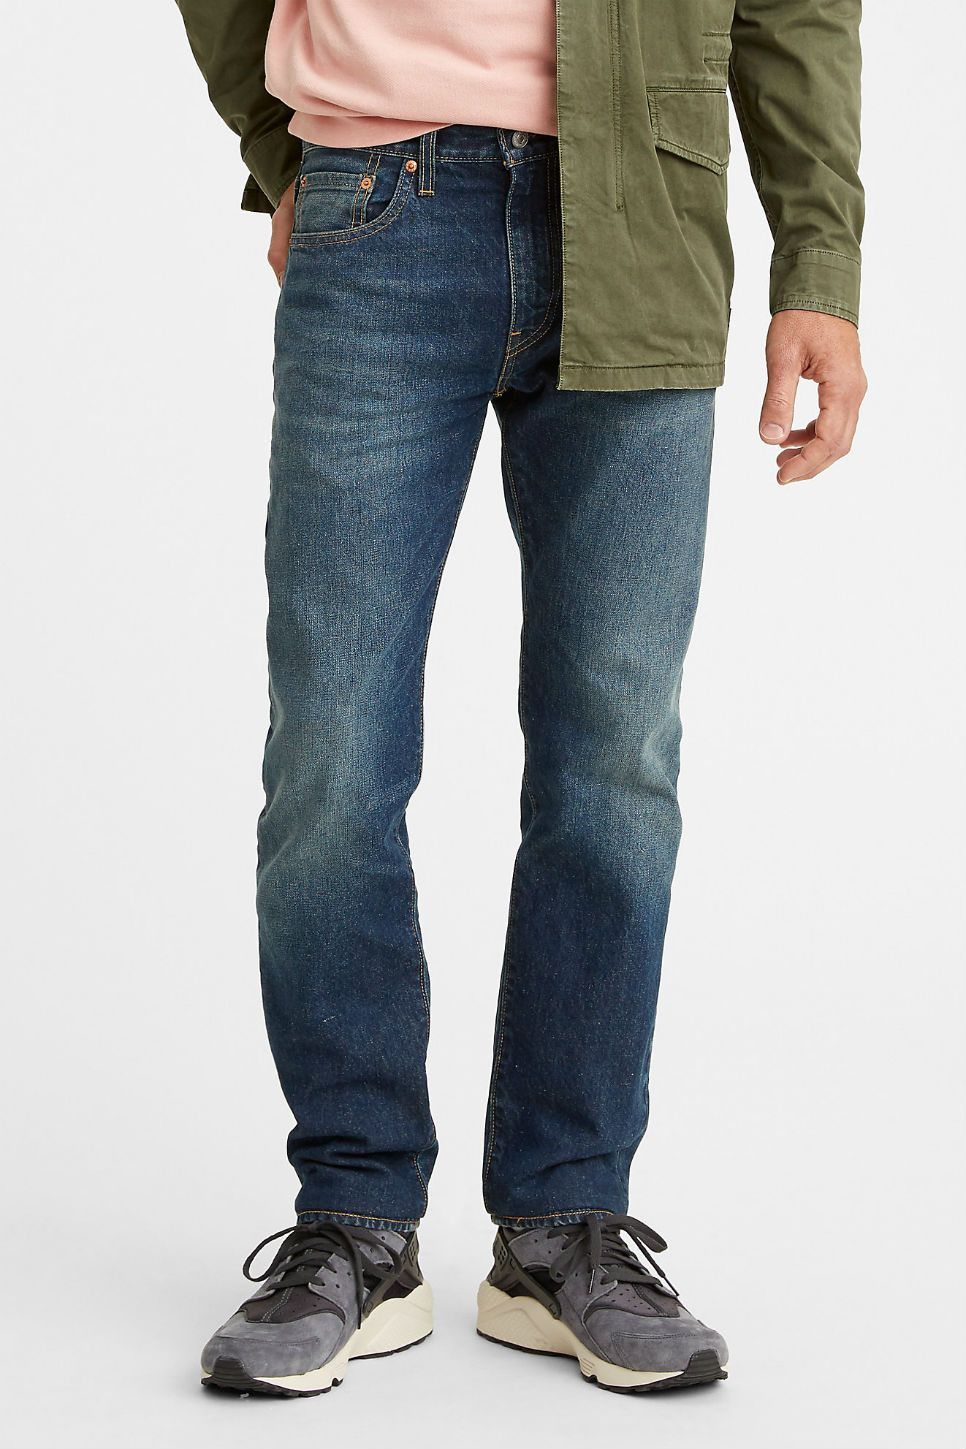 Levi's® WELLTHREAD™ 502™ Taper- Watermark Indigo High Tide